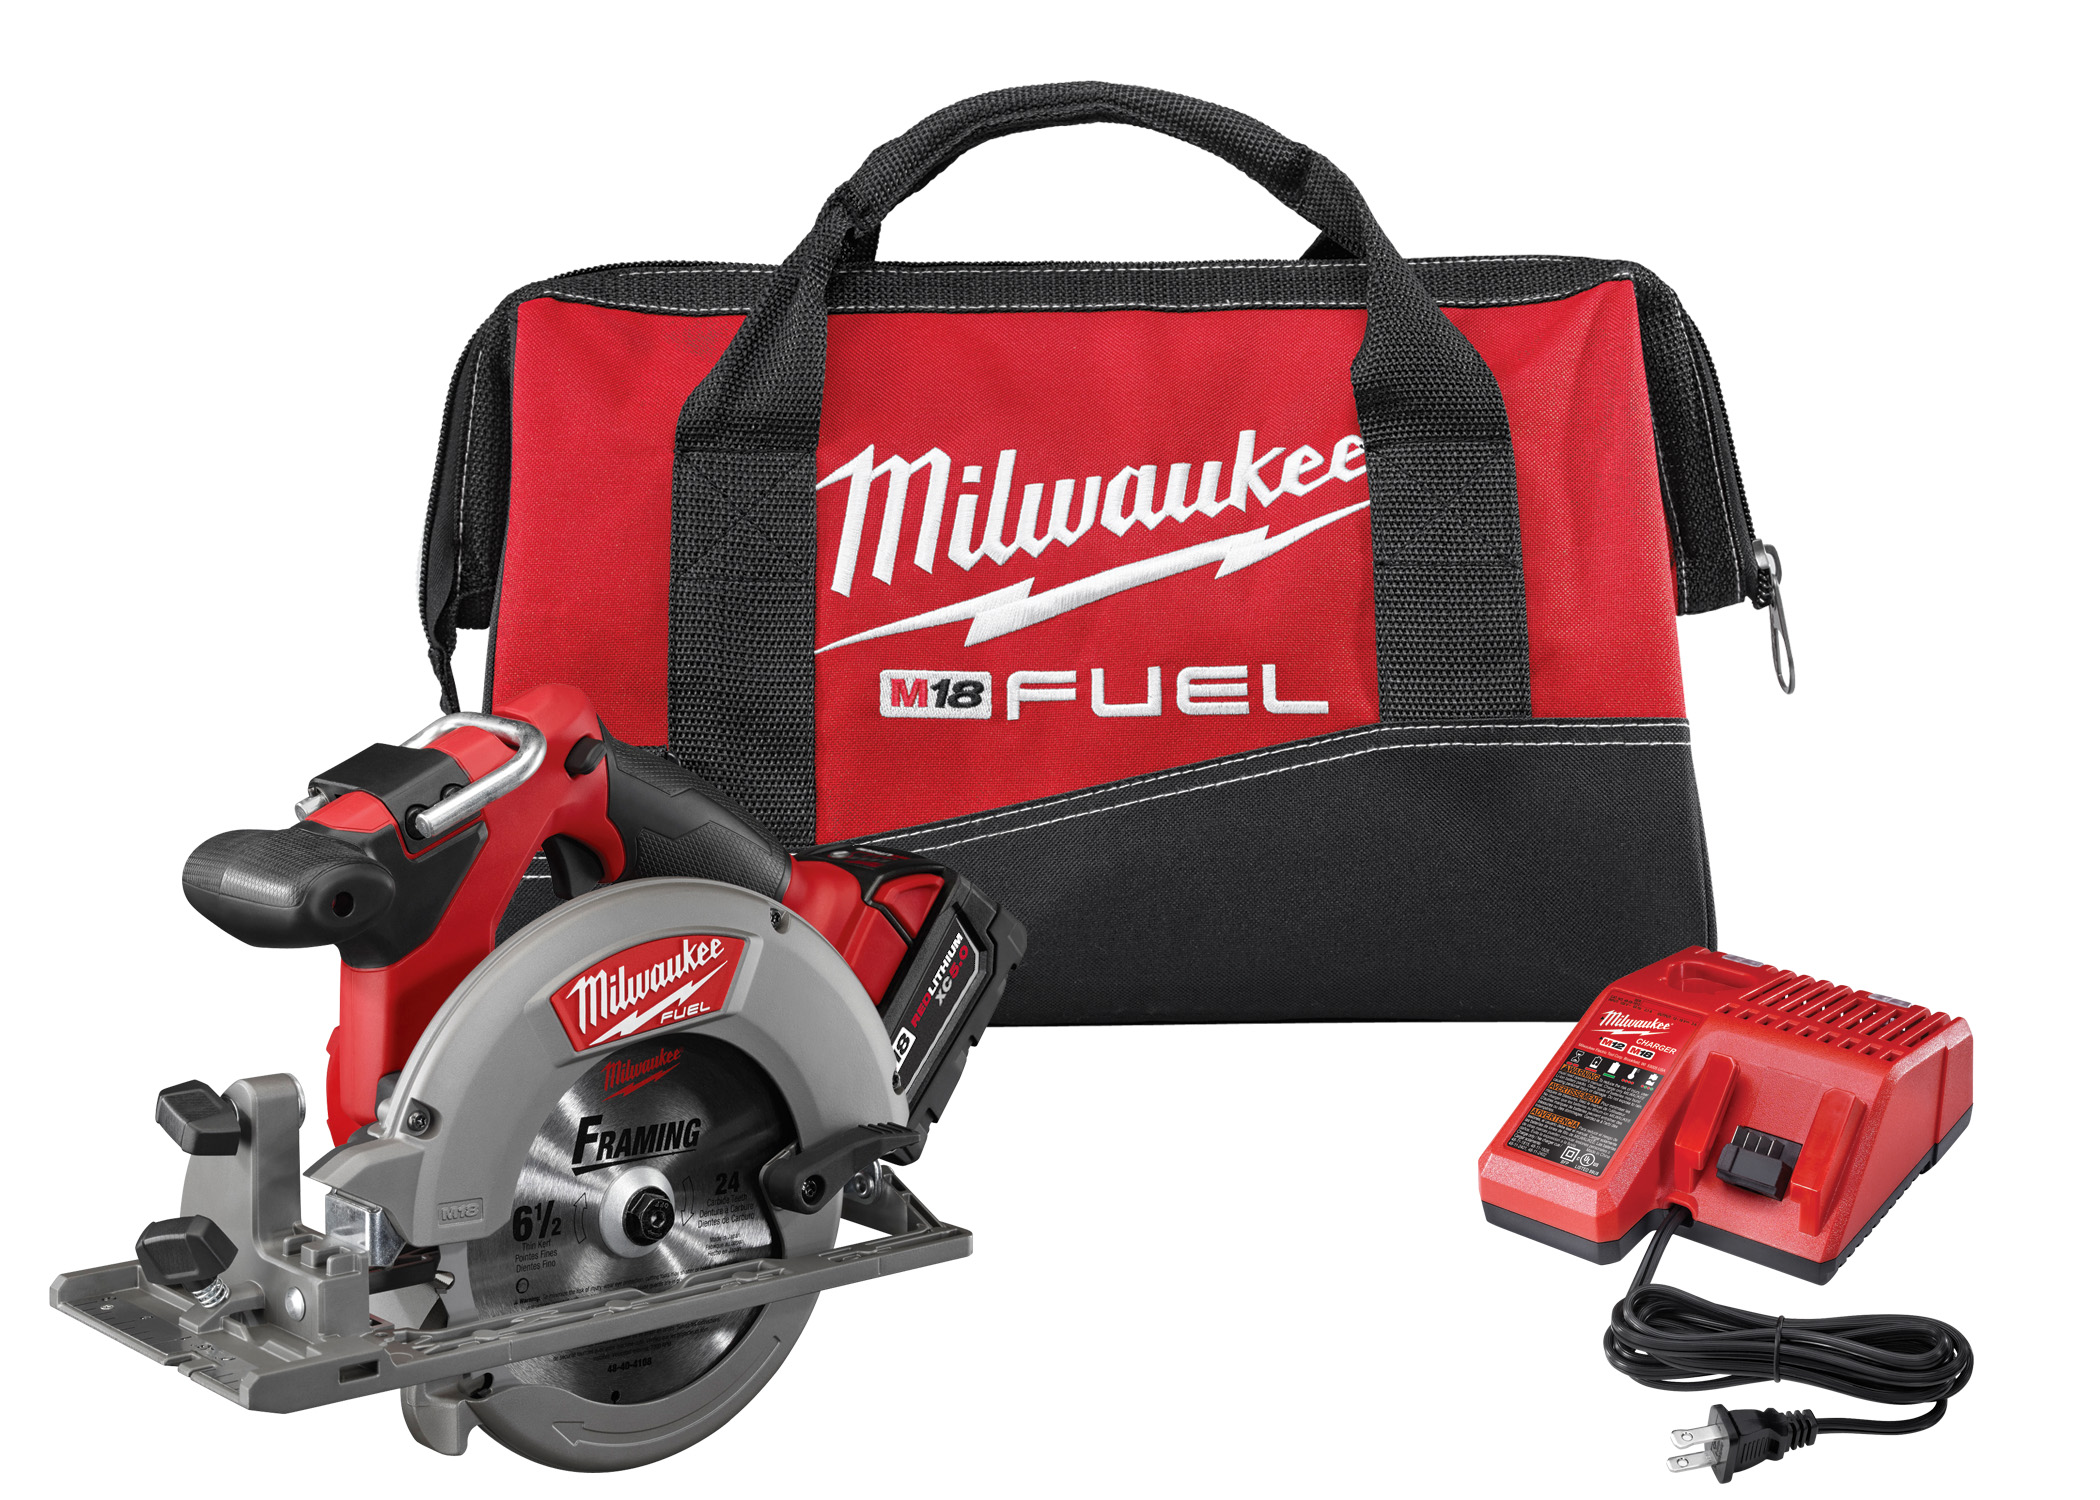 Milwaukee® M18™ FUEL™ 2730-21 Cordless Circular Saw Kit, 6-1/2 in Blade, 5/8 in Arbor/Shank, 18 VDC, 1-5/8 in, 2-3/16 in D Cutting, Lithium-Ion Battery